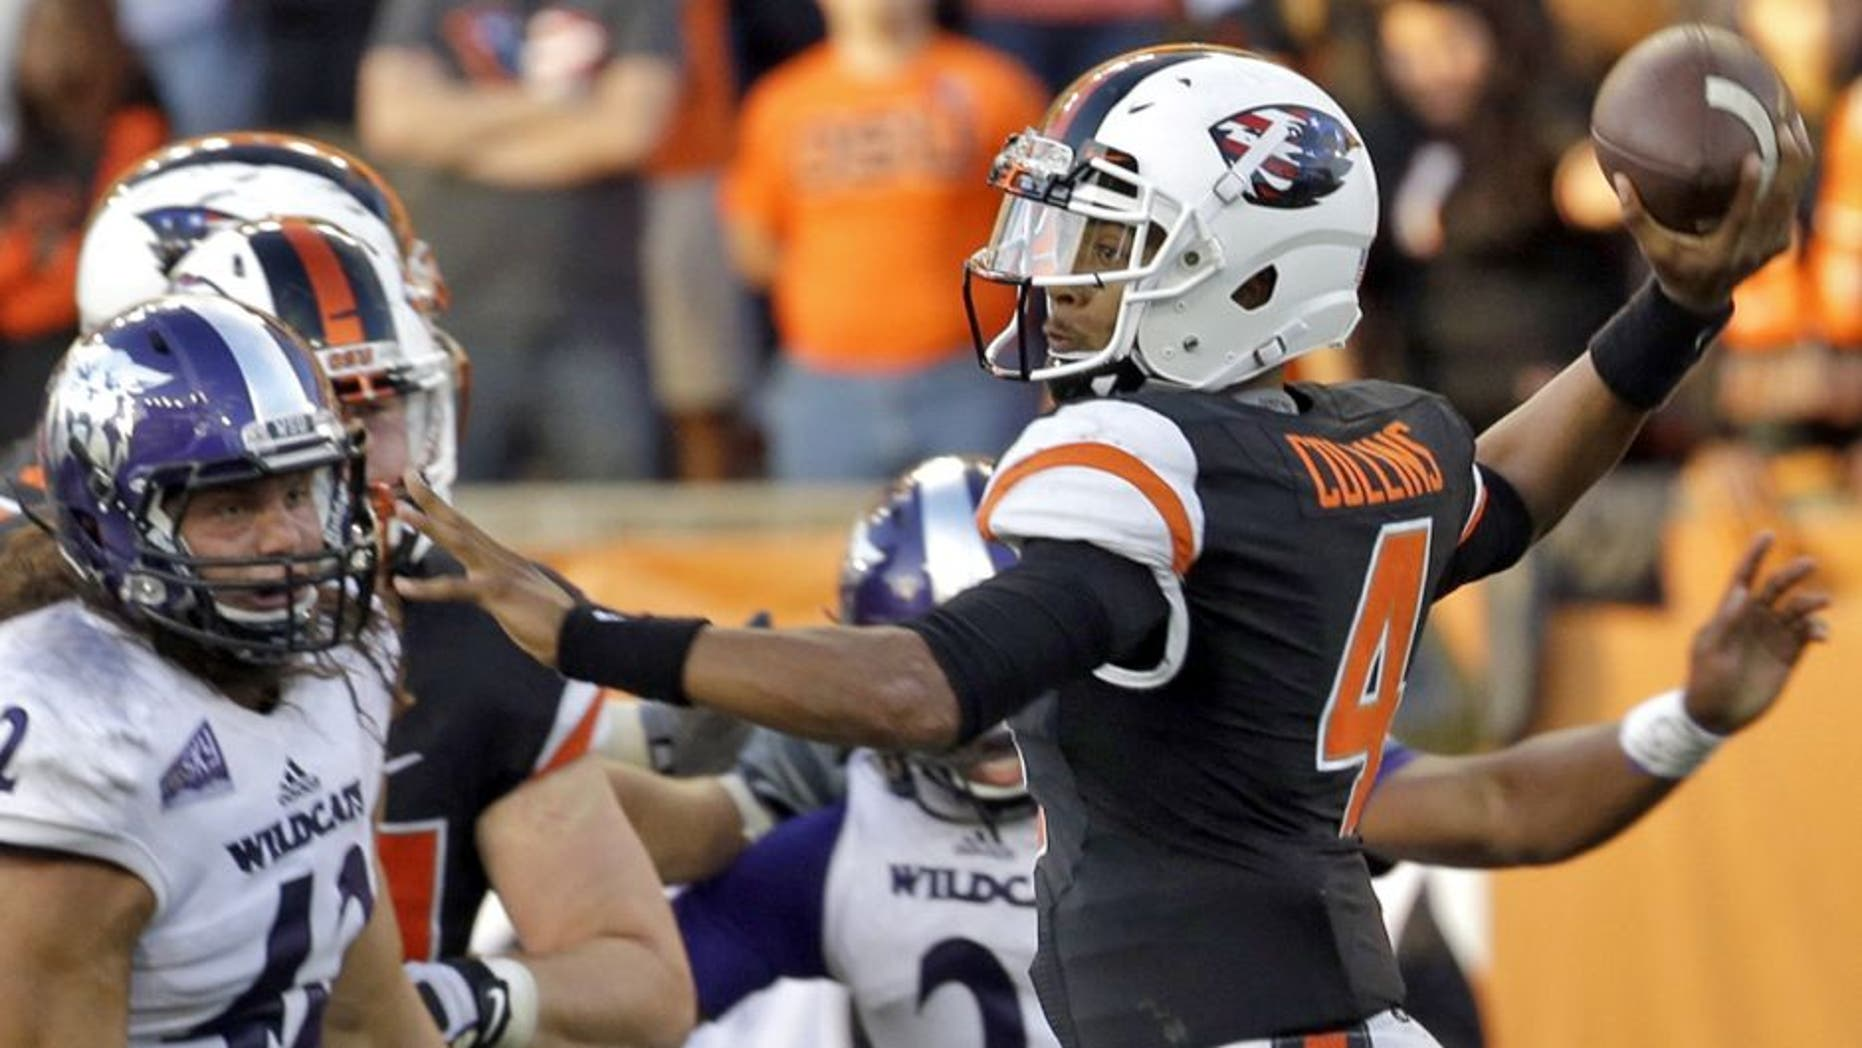 Oregon State quarterback Seth Collins, right, throws as Weber State defensive lineman Jonathan Carlson watches during the second half of an NCAA college football in Corvallis, Ore., Friday, Sept. 4, 2015. Oregon State won 26-7. (AP Photo/Don Ryan)